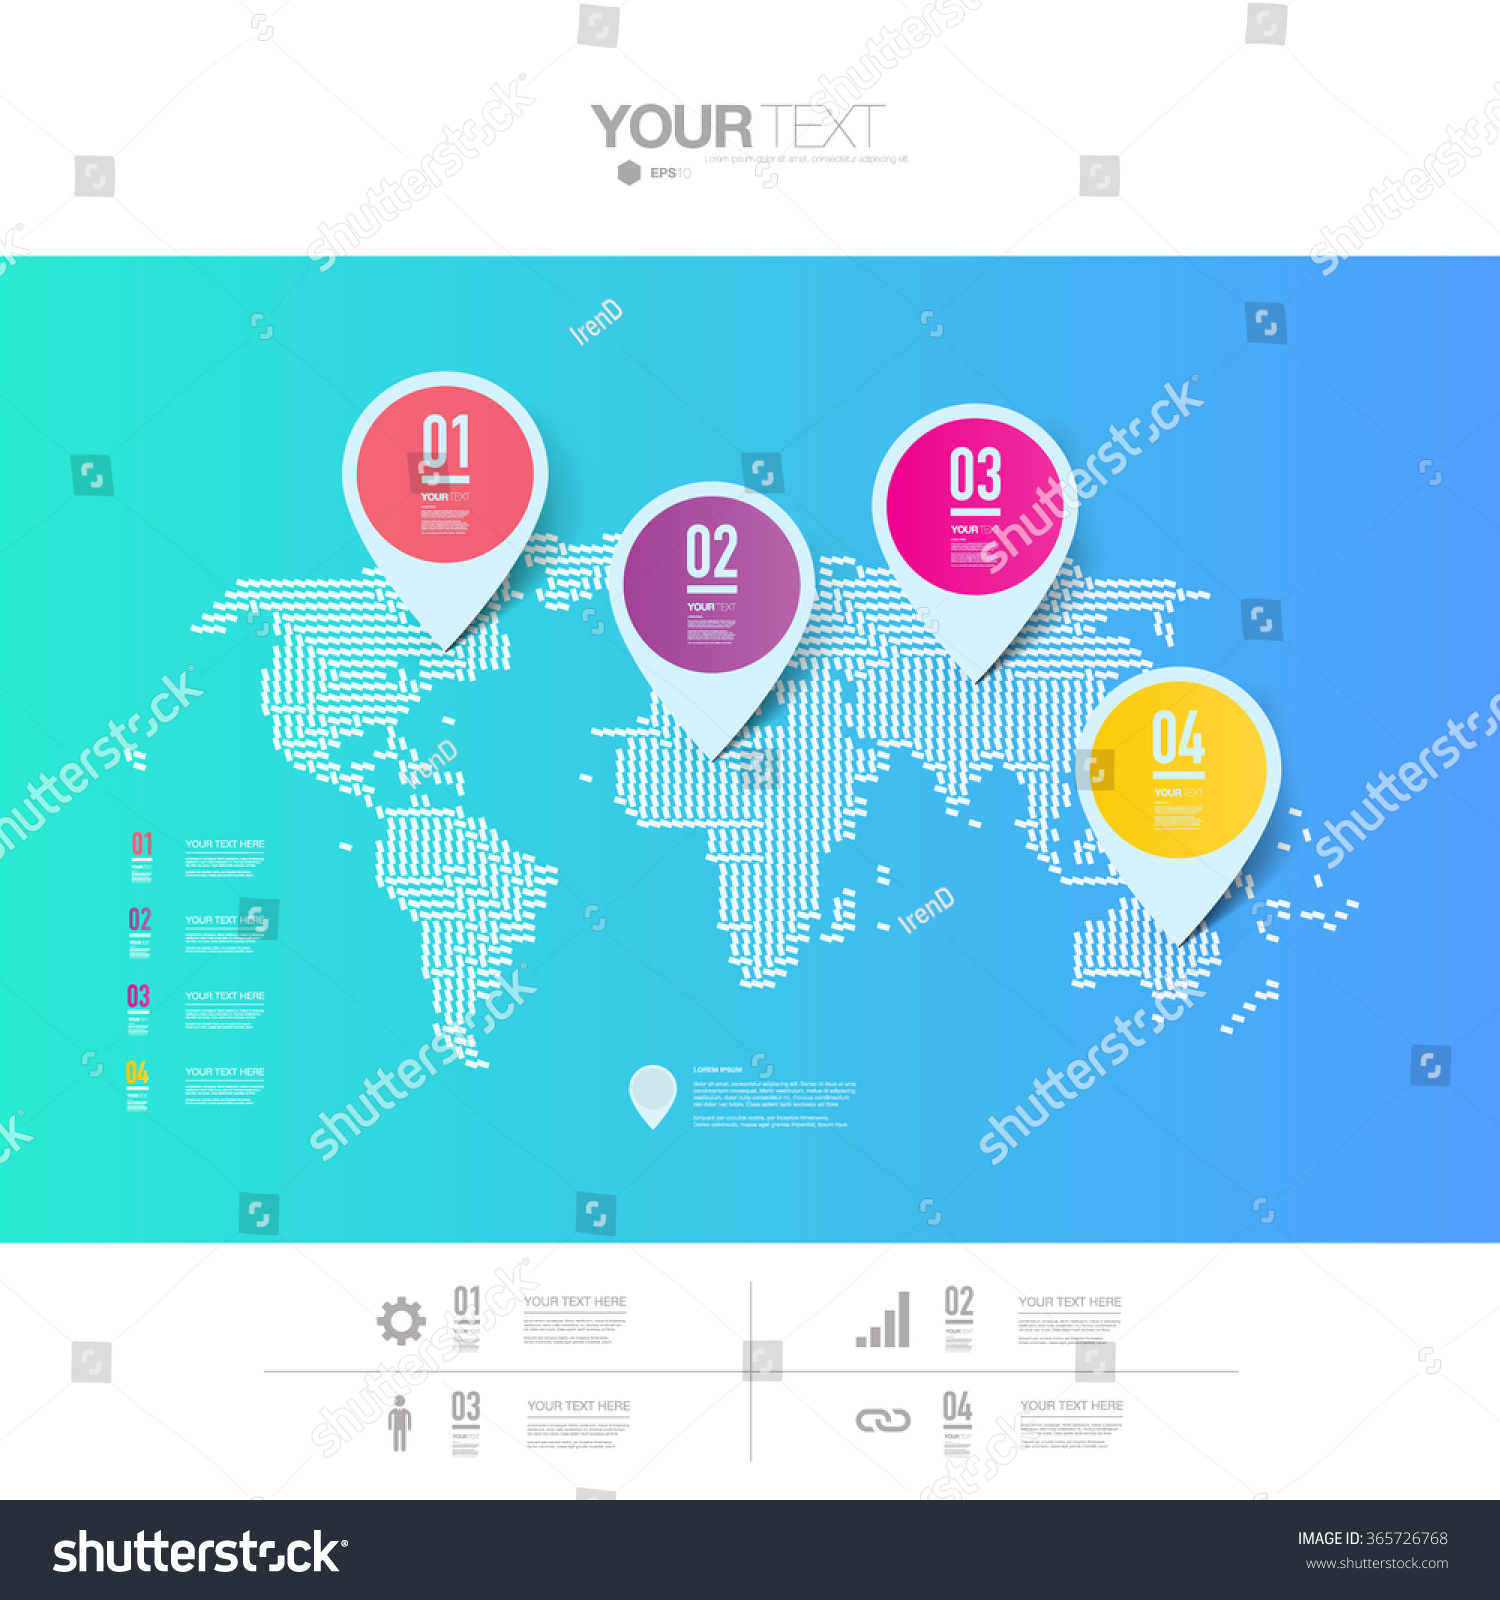 Abstract map pin icon design shadows stock vector 365726768 abstract map pin icon design with shadows on minimal world map background eps 10 stock vector gumiabroncs Images